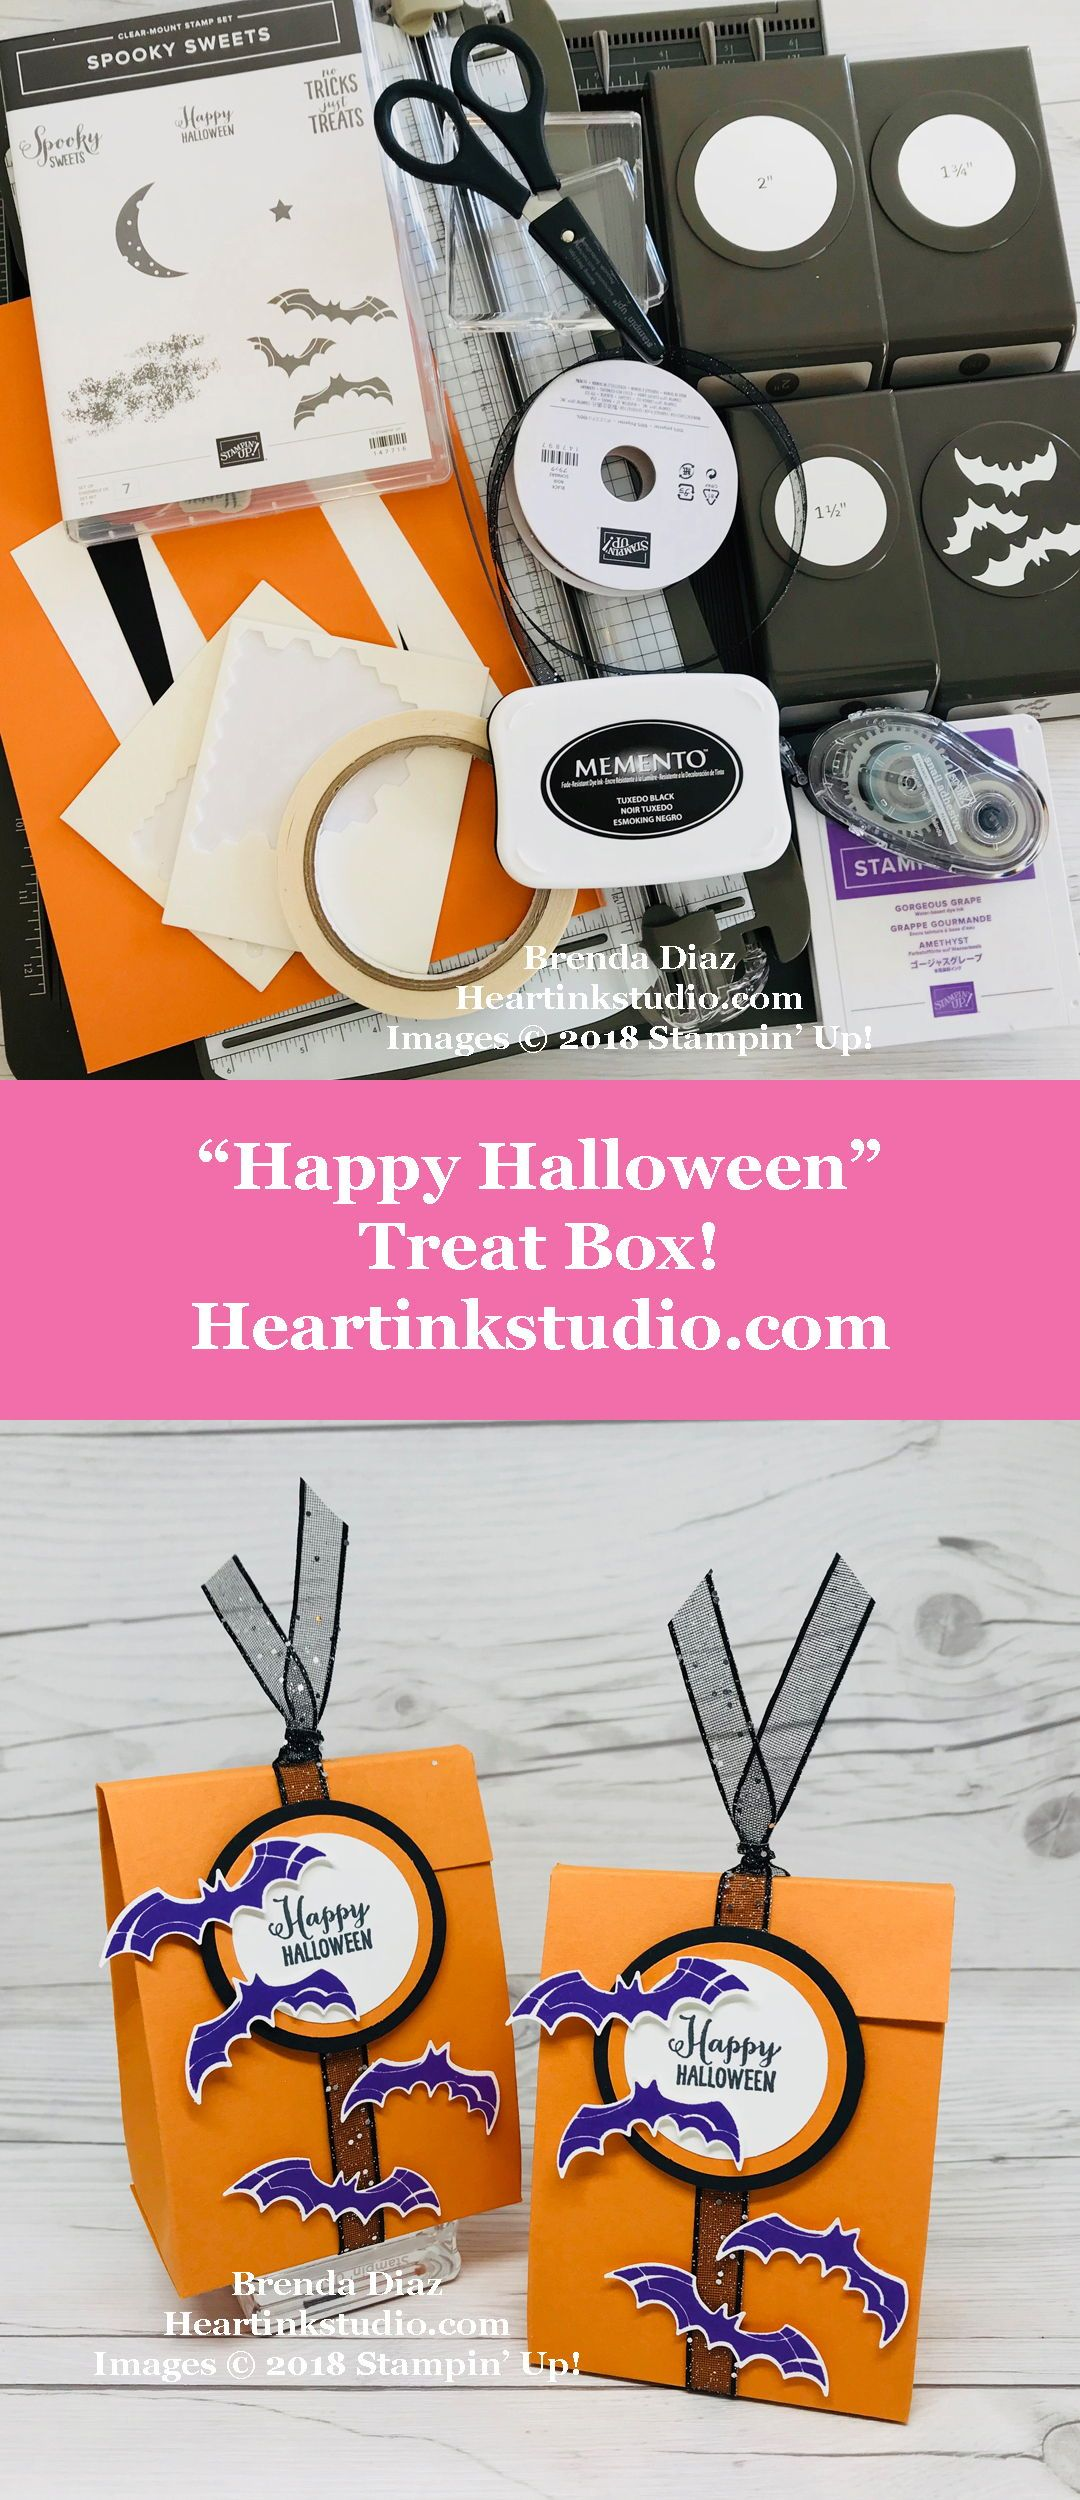 Happy Halloween Treat Box Featuring Spooky Sweets And